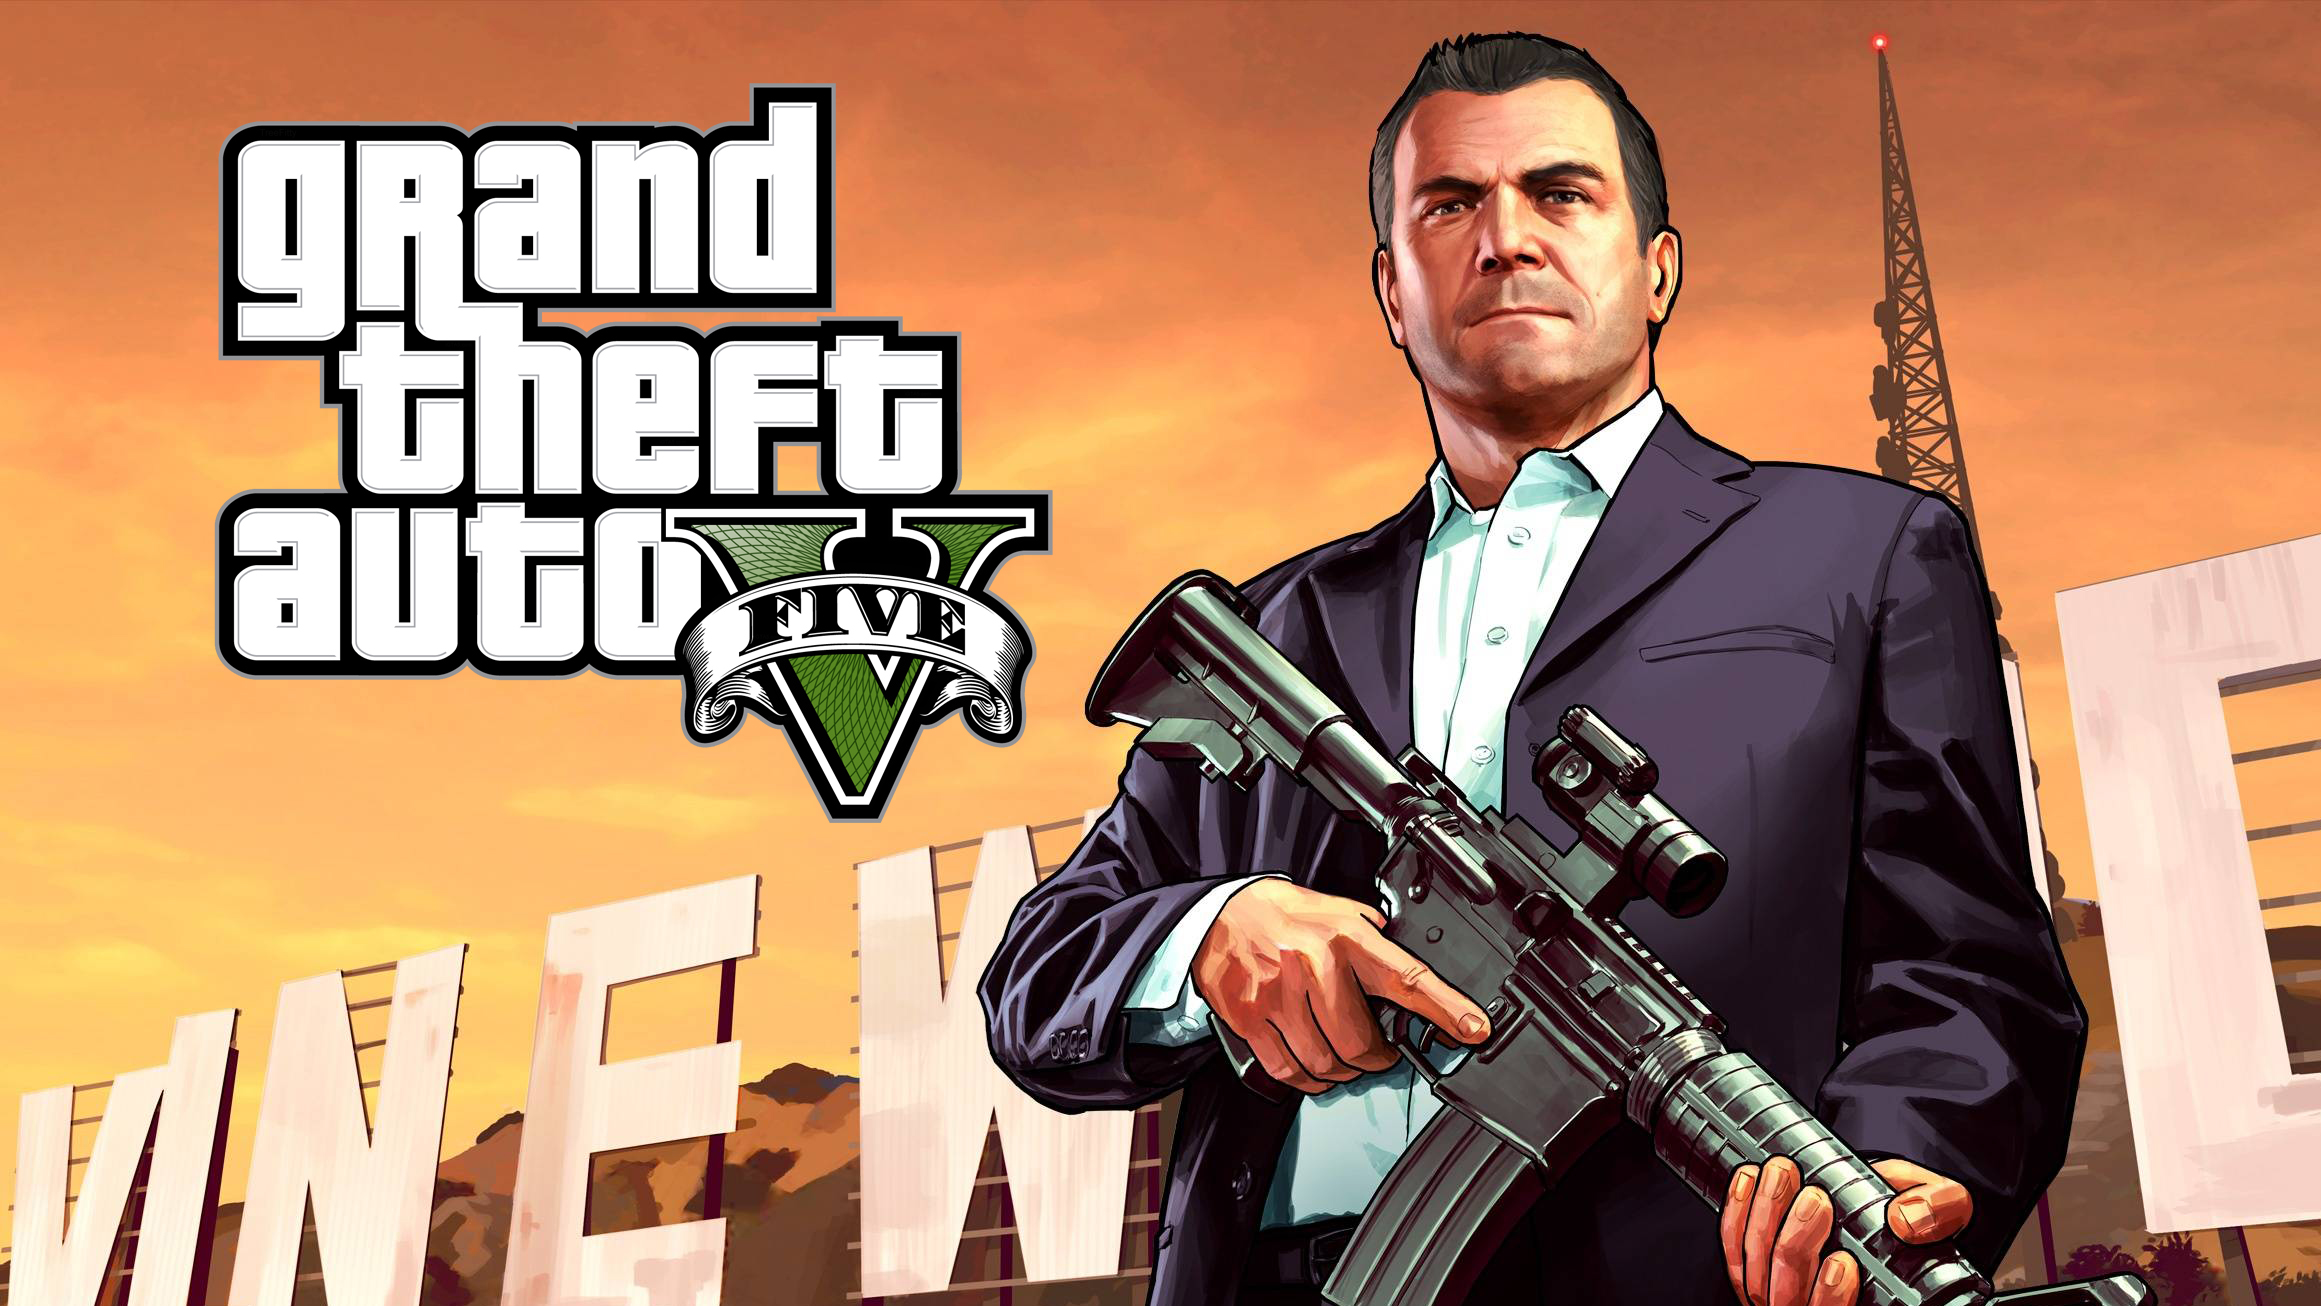 New gta v screenshots showcase the fast life the koalition - Gta v wallpaper ...